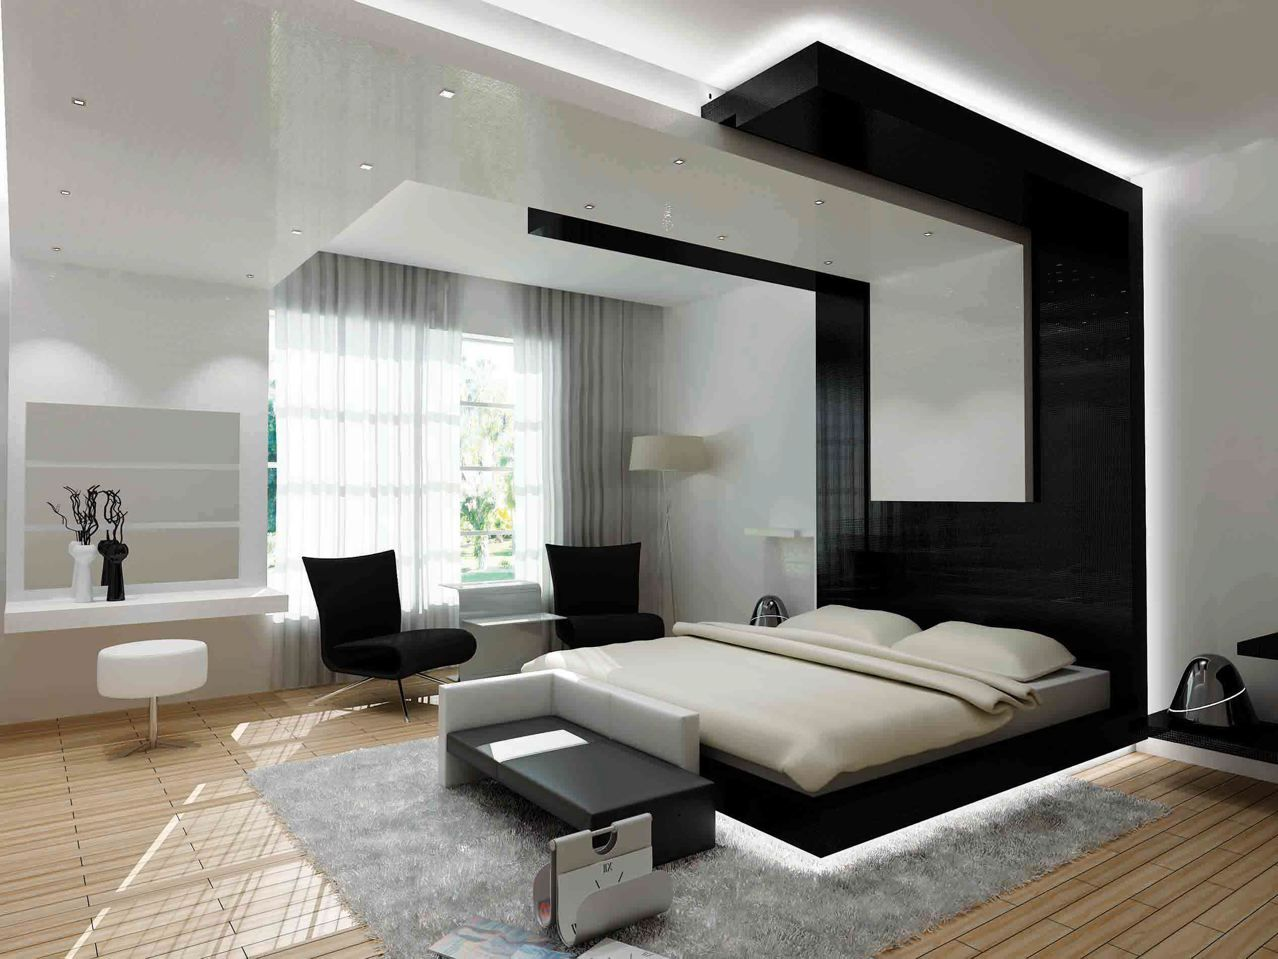 Best Modern Bedroom Designs Collection 25 best modern bedroom designs | bedrooms, contemporary and modern